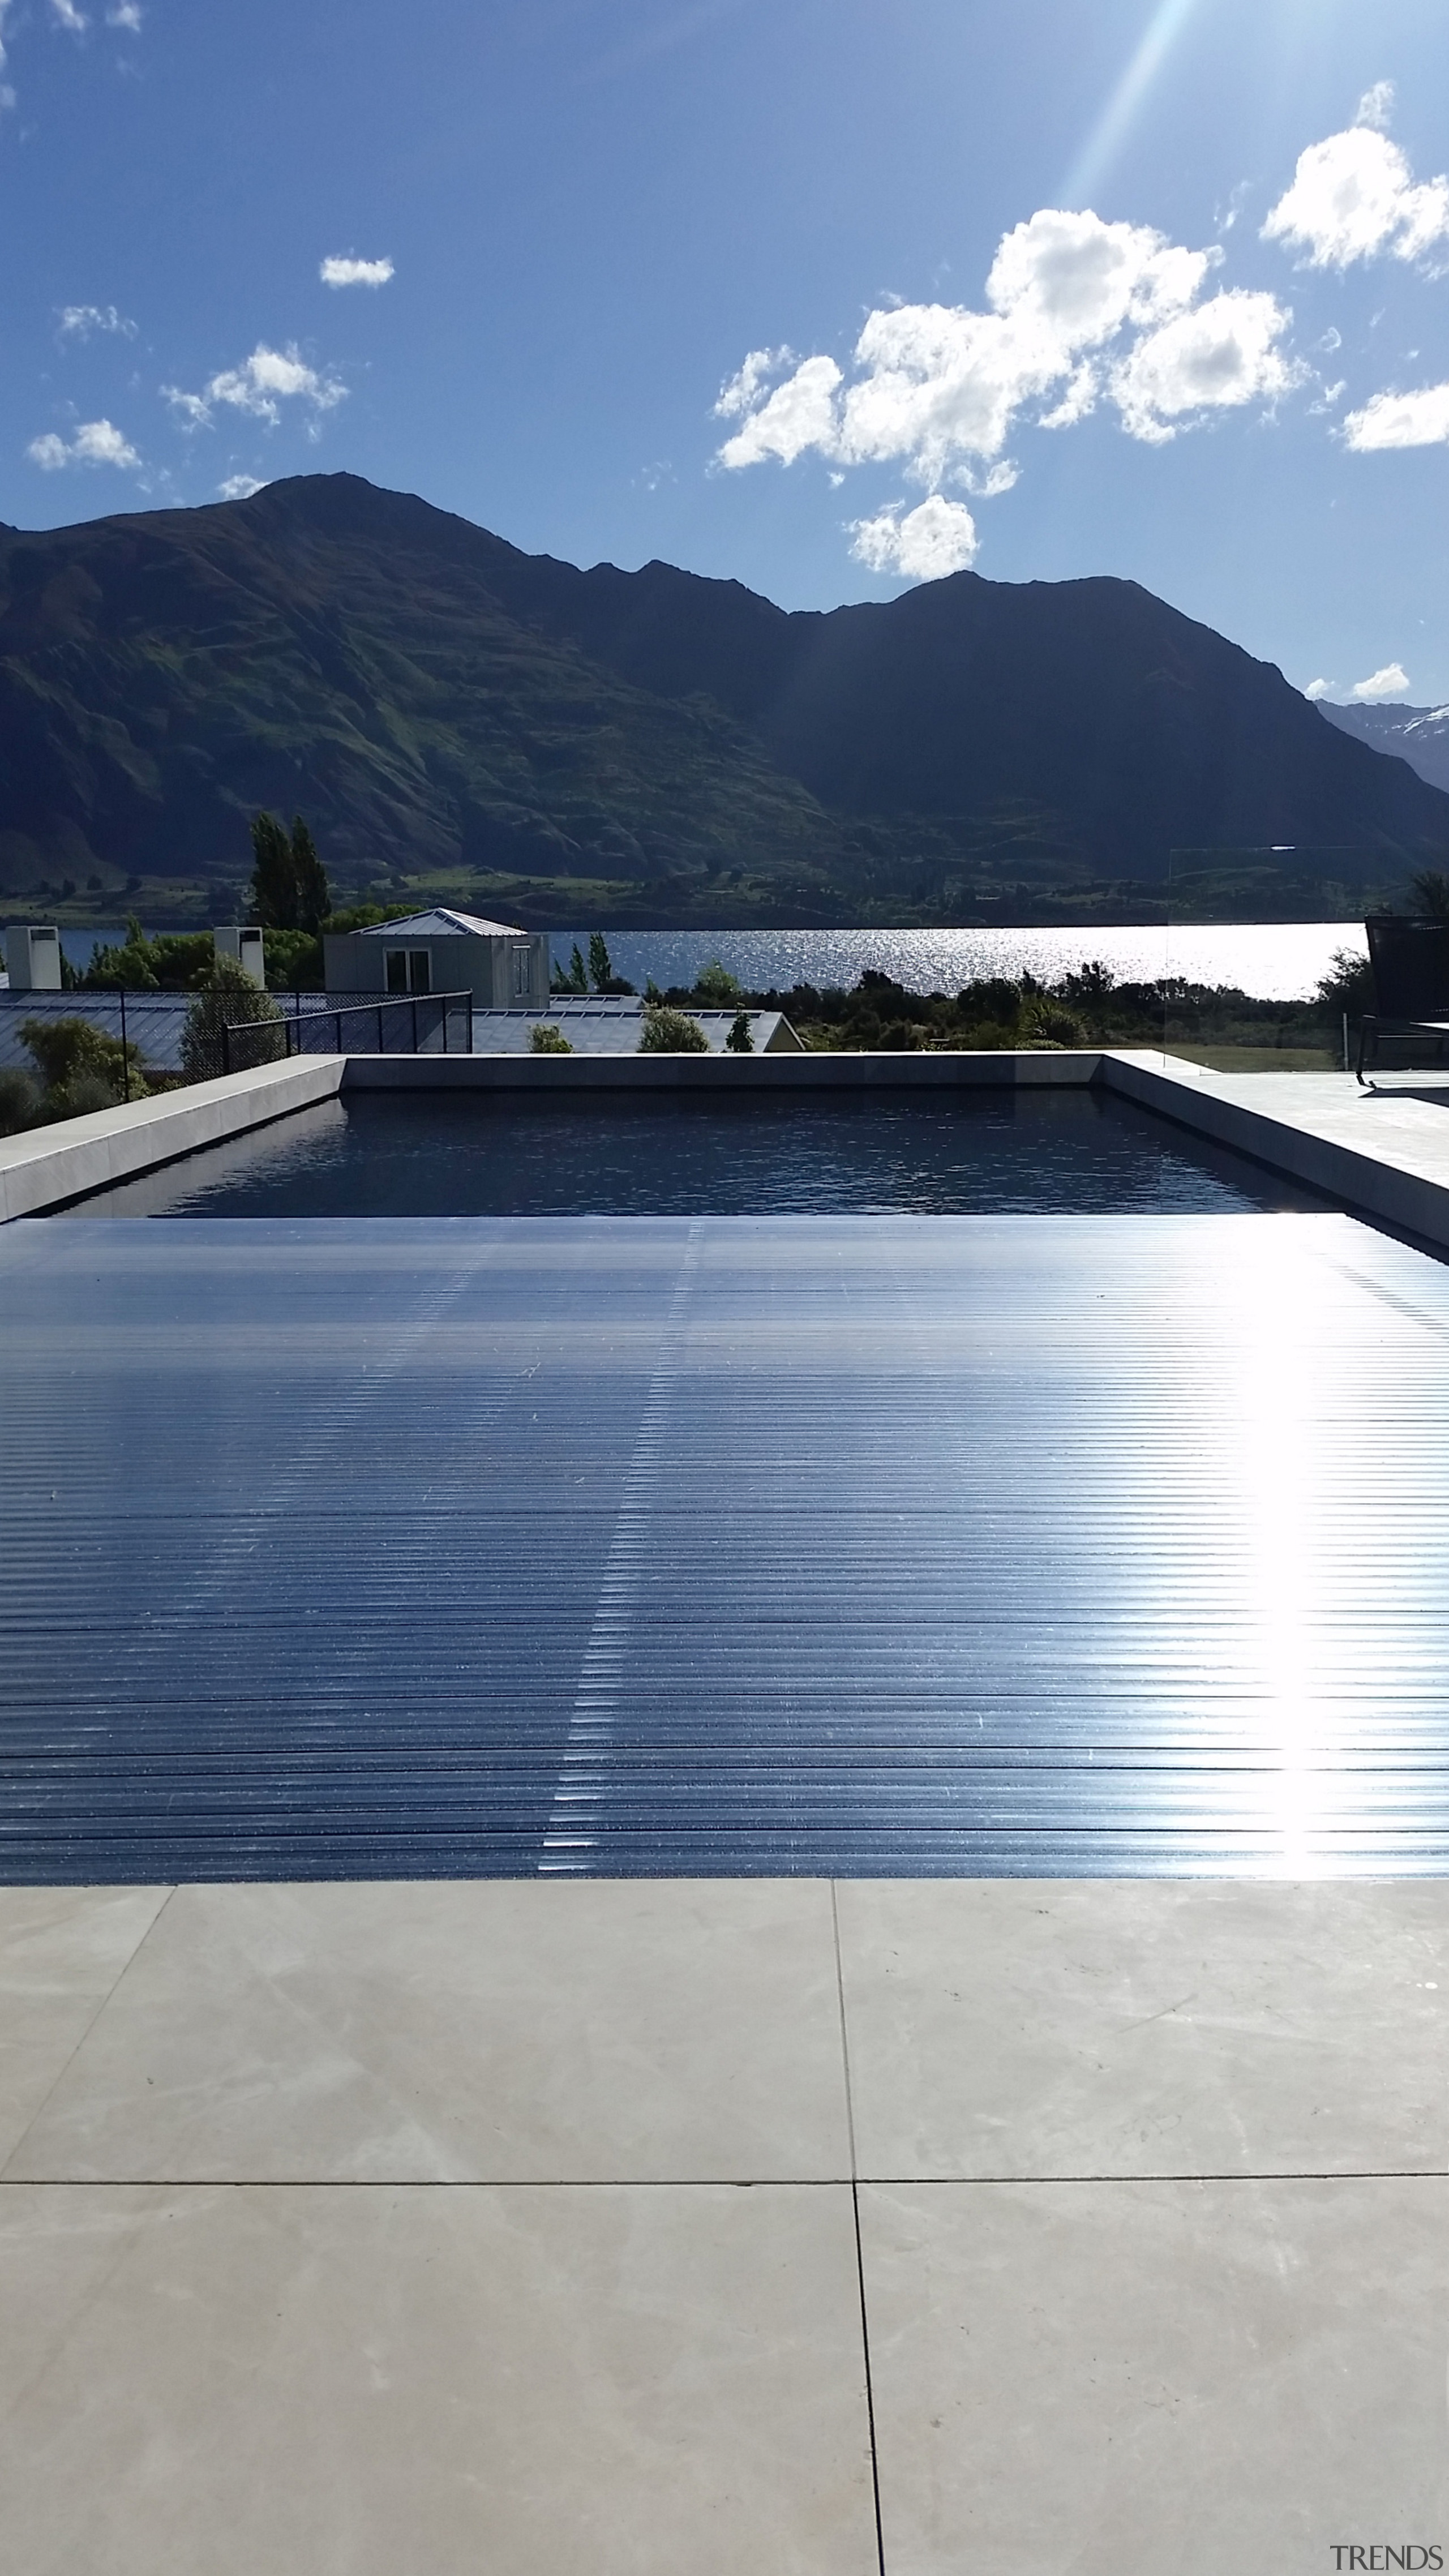 Roll Out Roll Under slatted covers are a reflection, reservoir, water, covers 4 pools, swimming pool